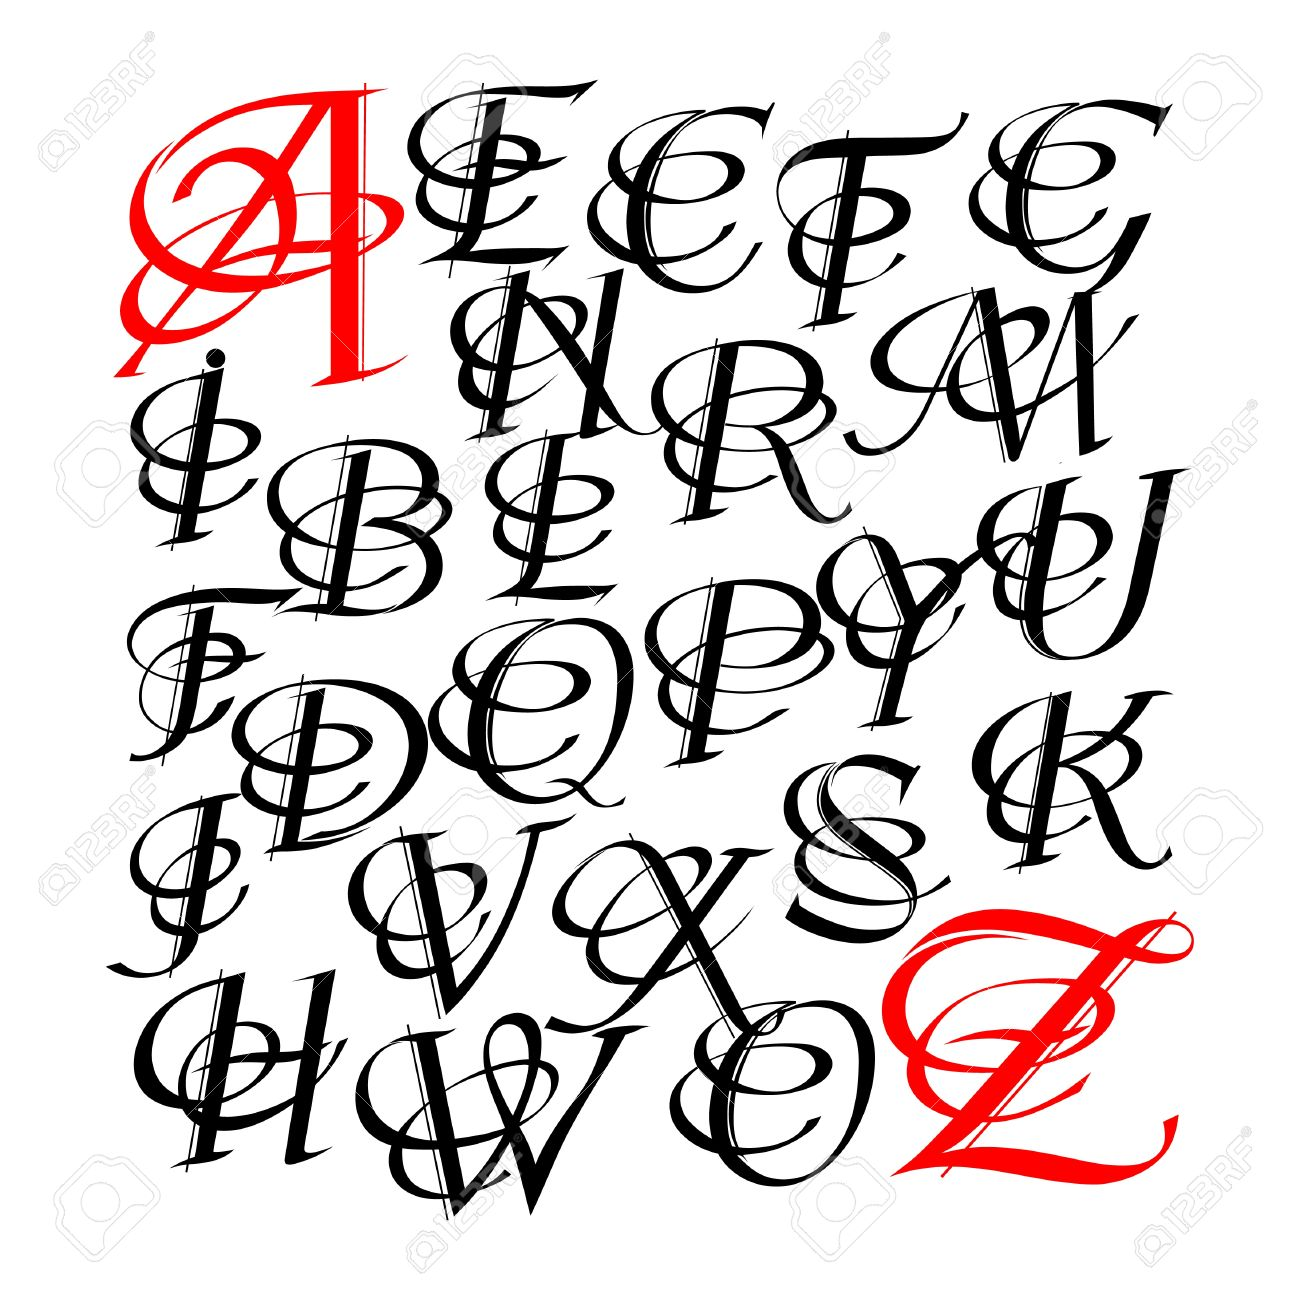 Calligraphic Letters Vector Design Royalty Free Cliparts, Vectors ...